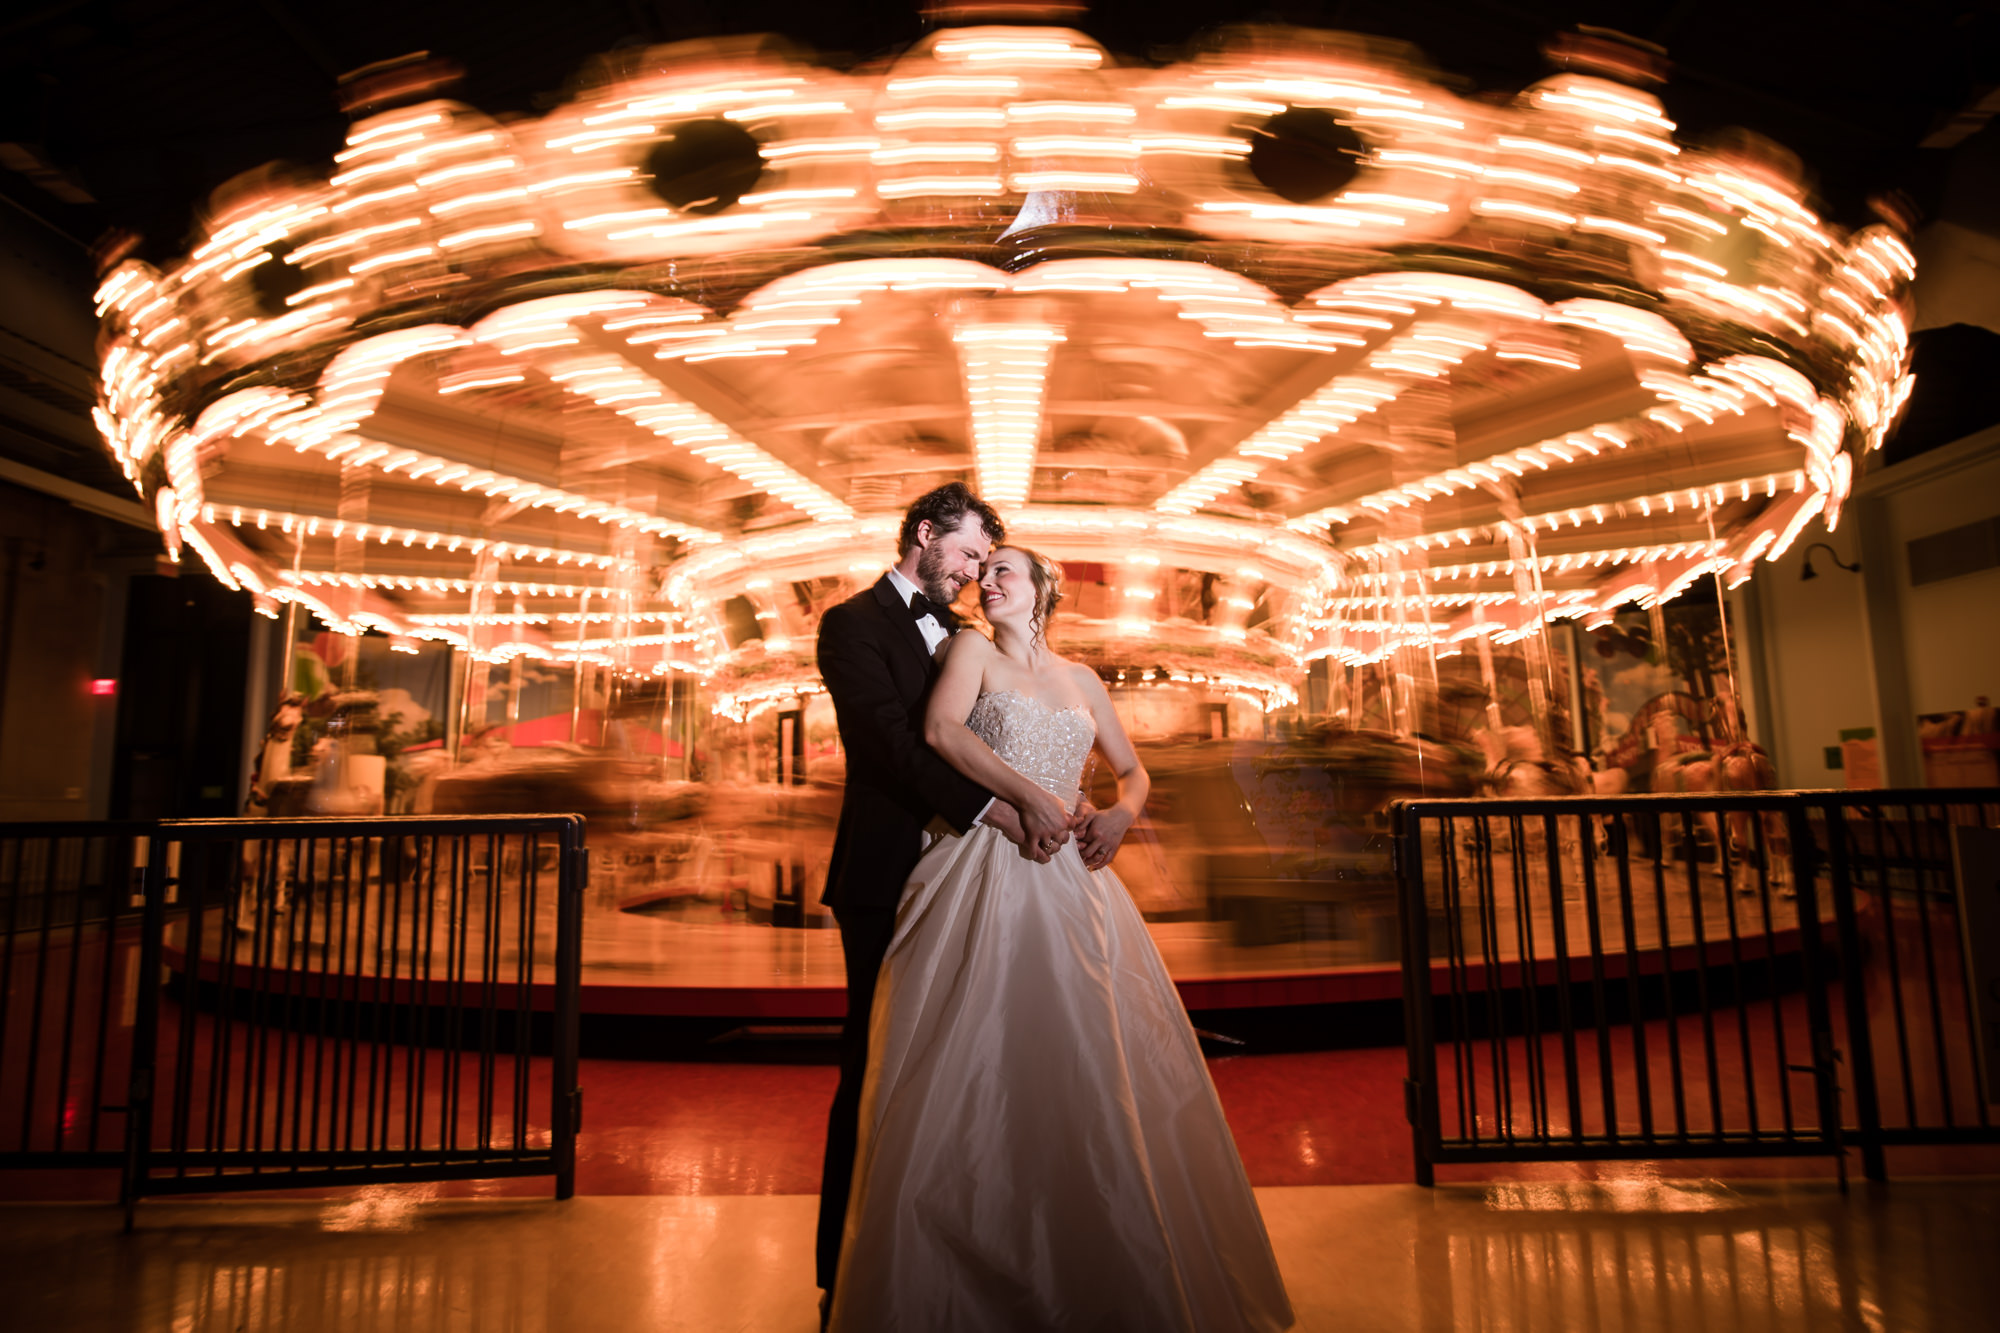 Bride and groom pose in front of spinning carousel, by Cliff Mautner